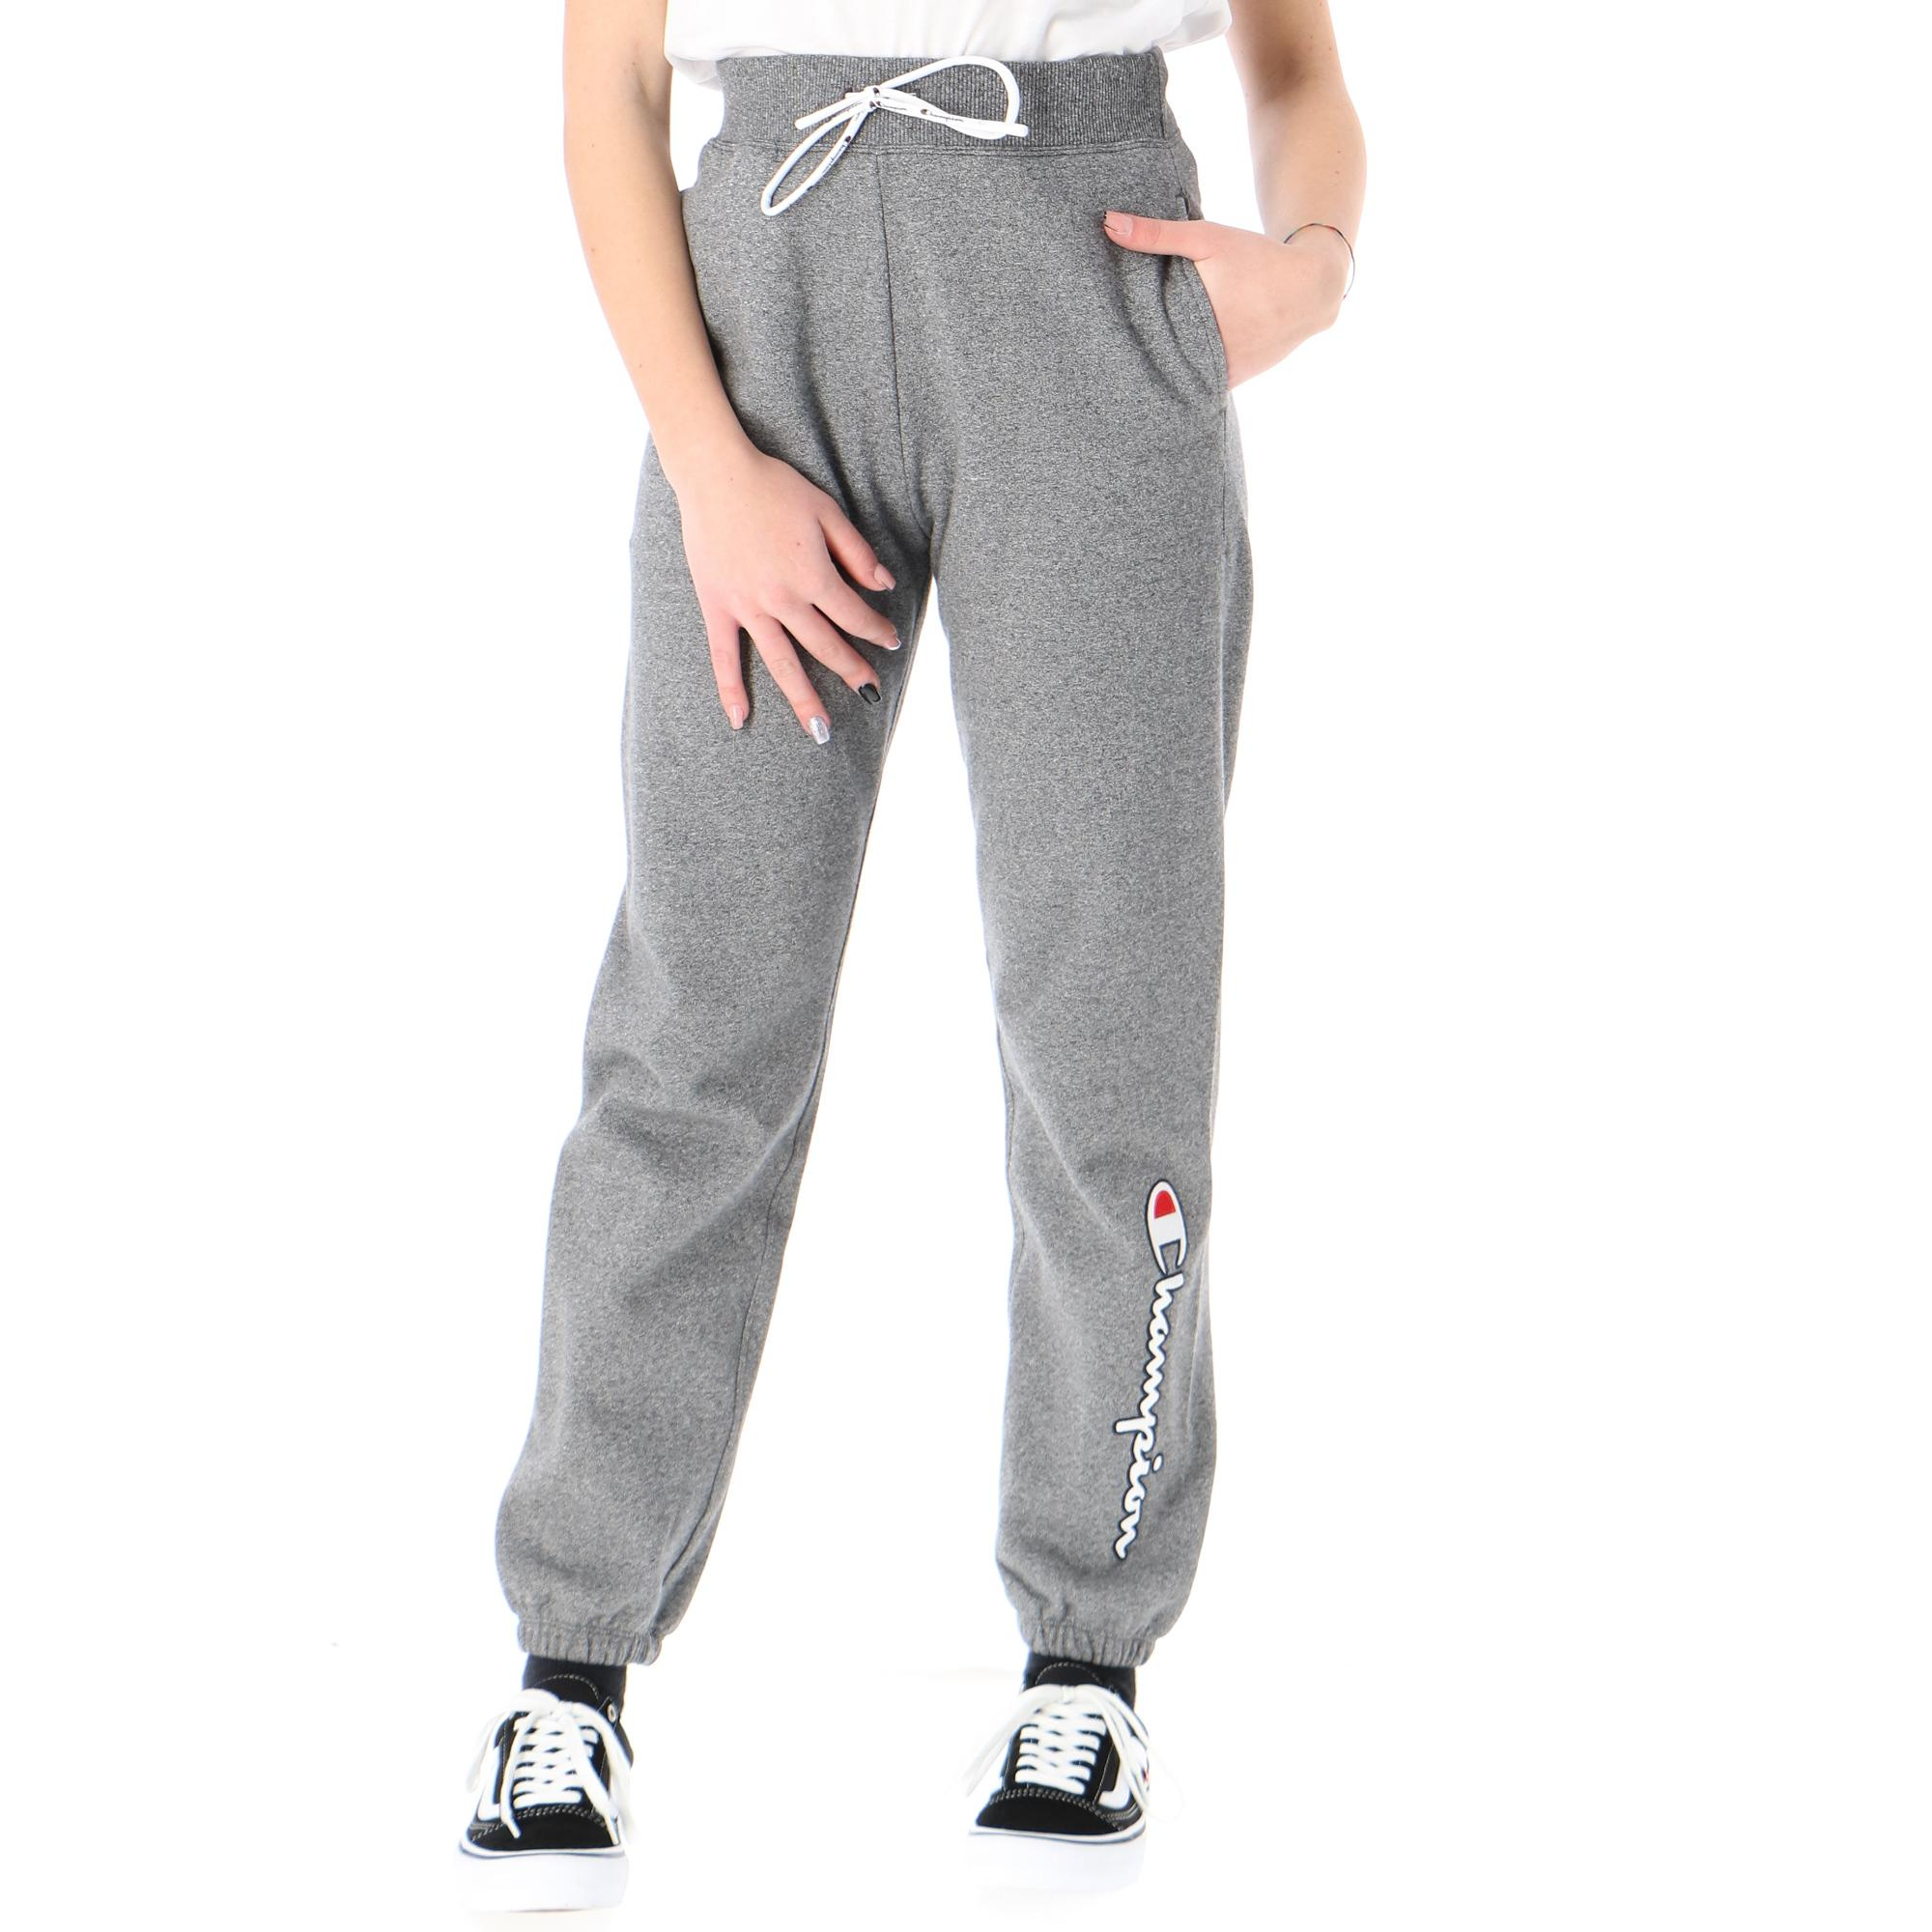 Champion Elastic Cuff Pants GREY